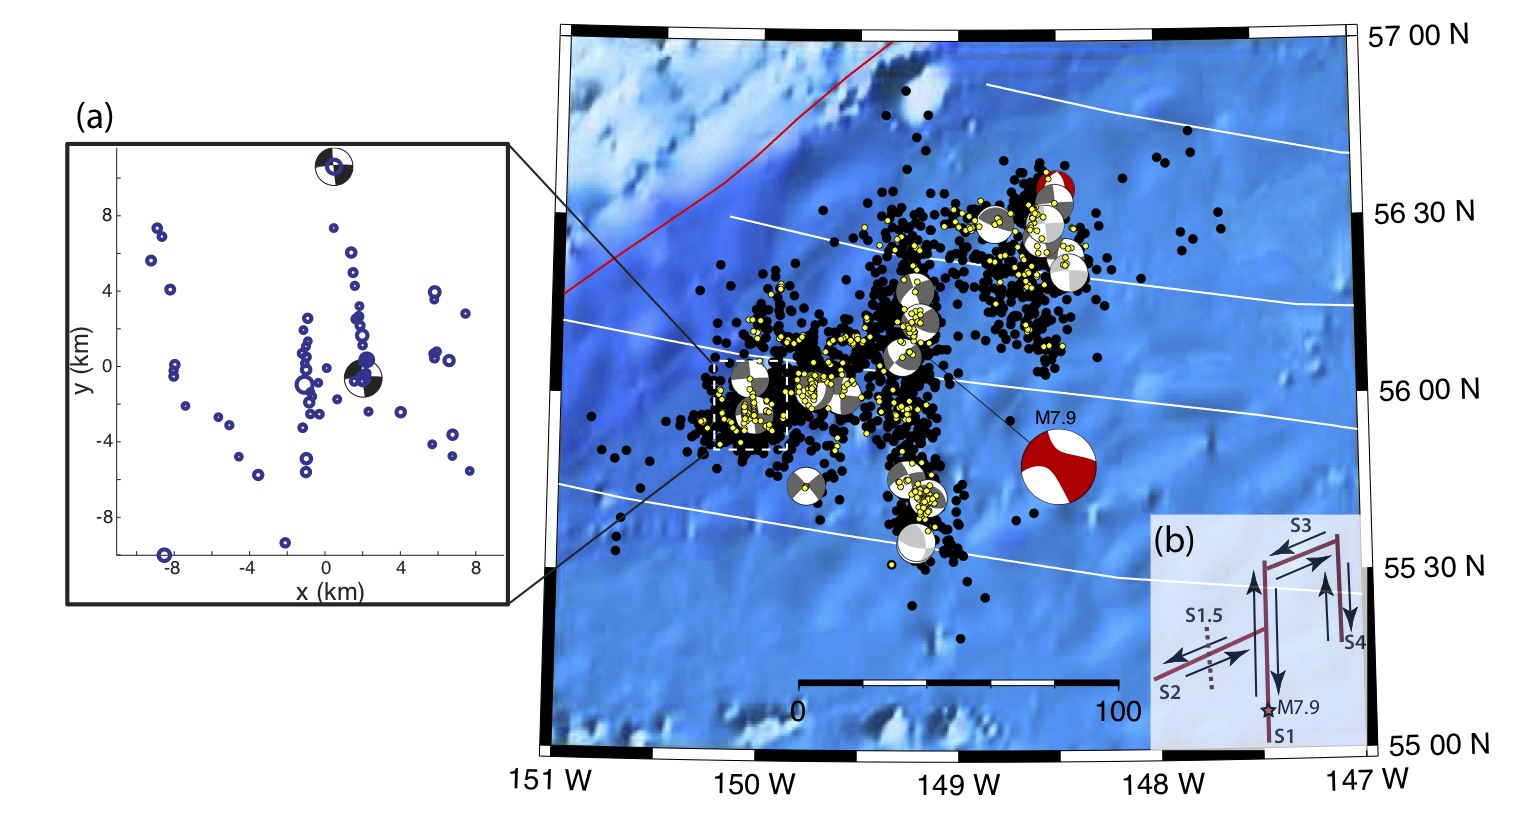 hight resolution of map of the aftershocks and moment tensors black circles show m 3 aftershocks while yellow circles show relocated aftershocks grey beach balls are from